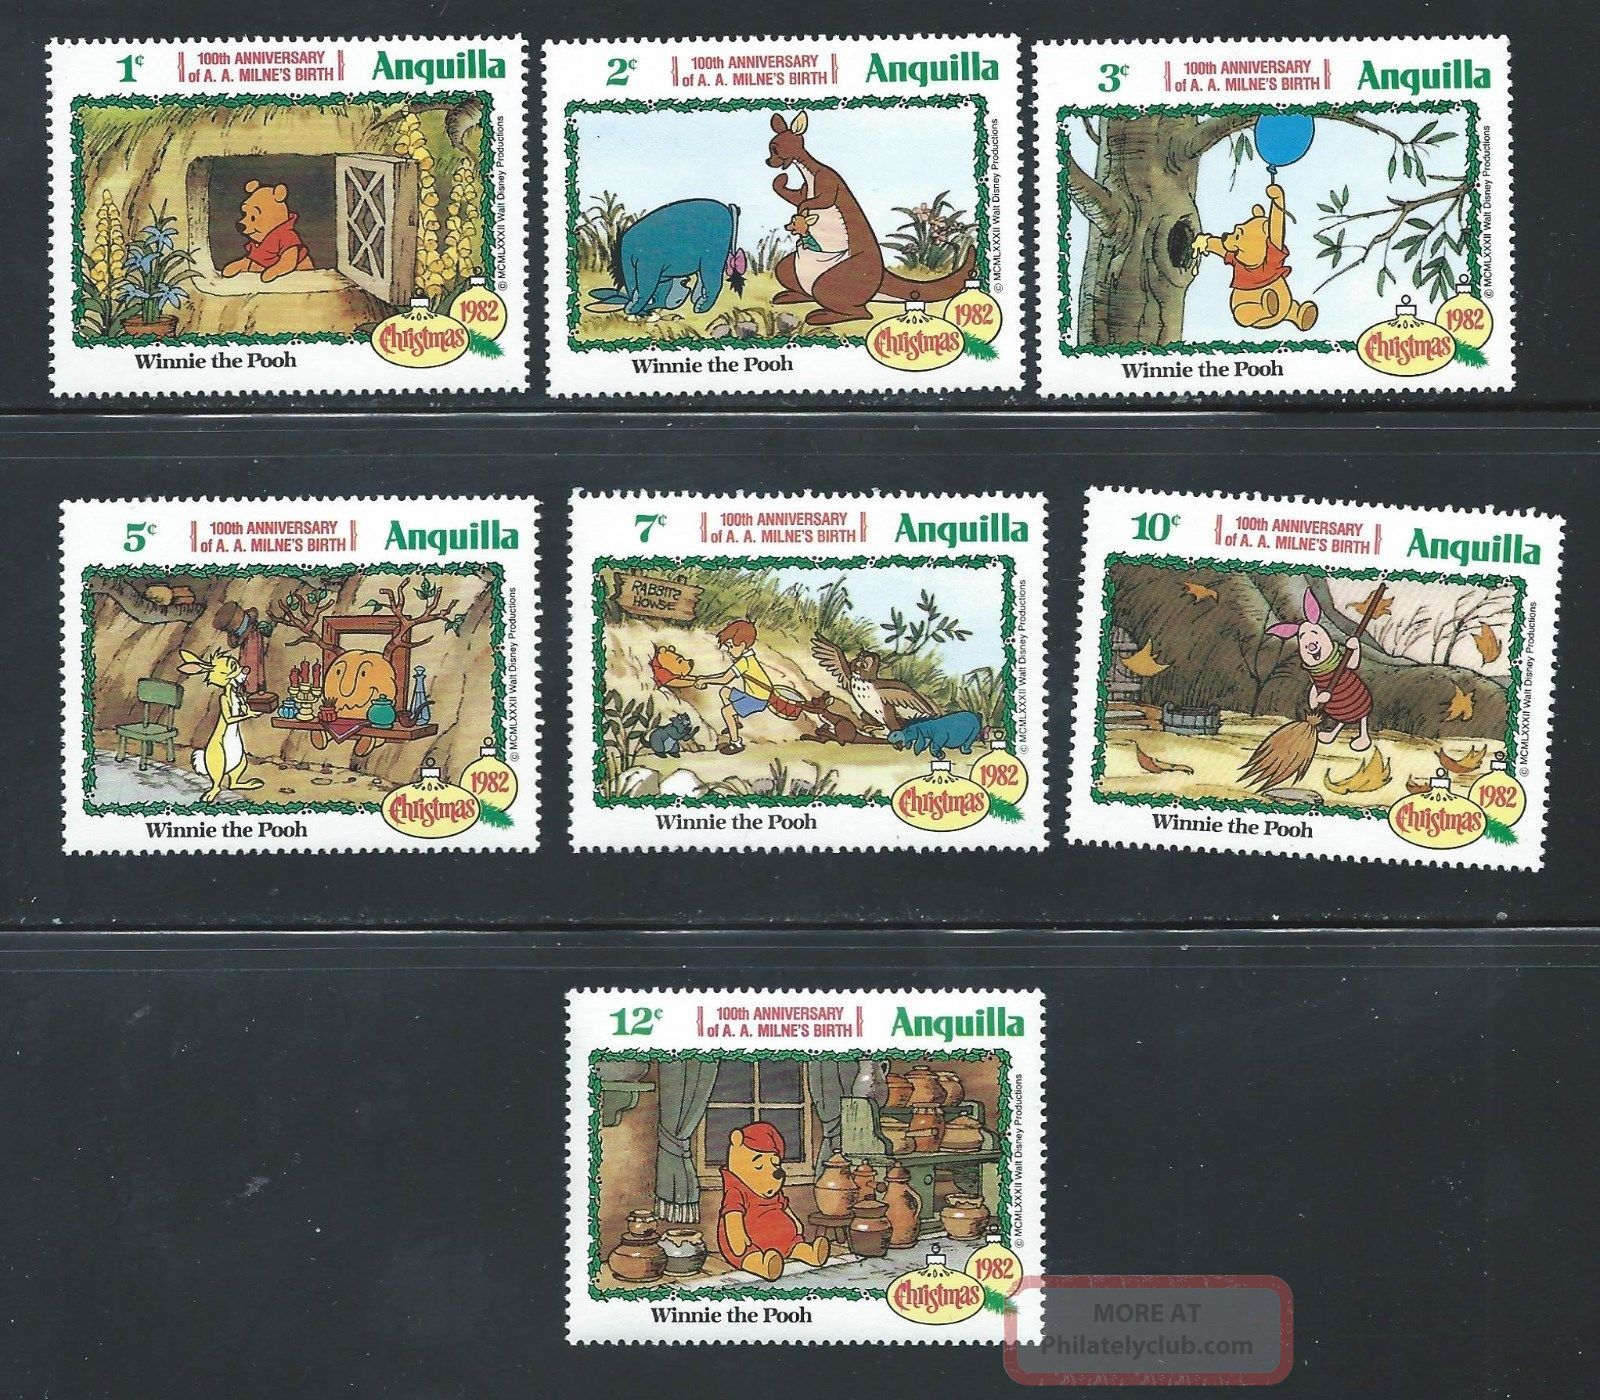 Anguilla - Sc 511 - 17 Disney Winnie The Pooh - Topical Stamps photo